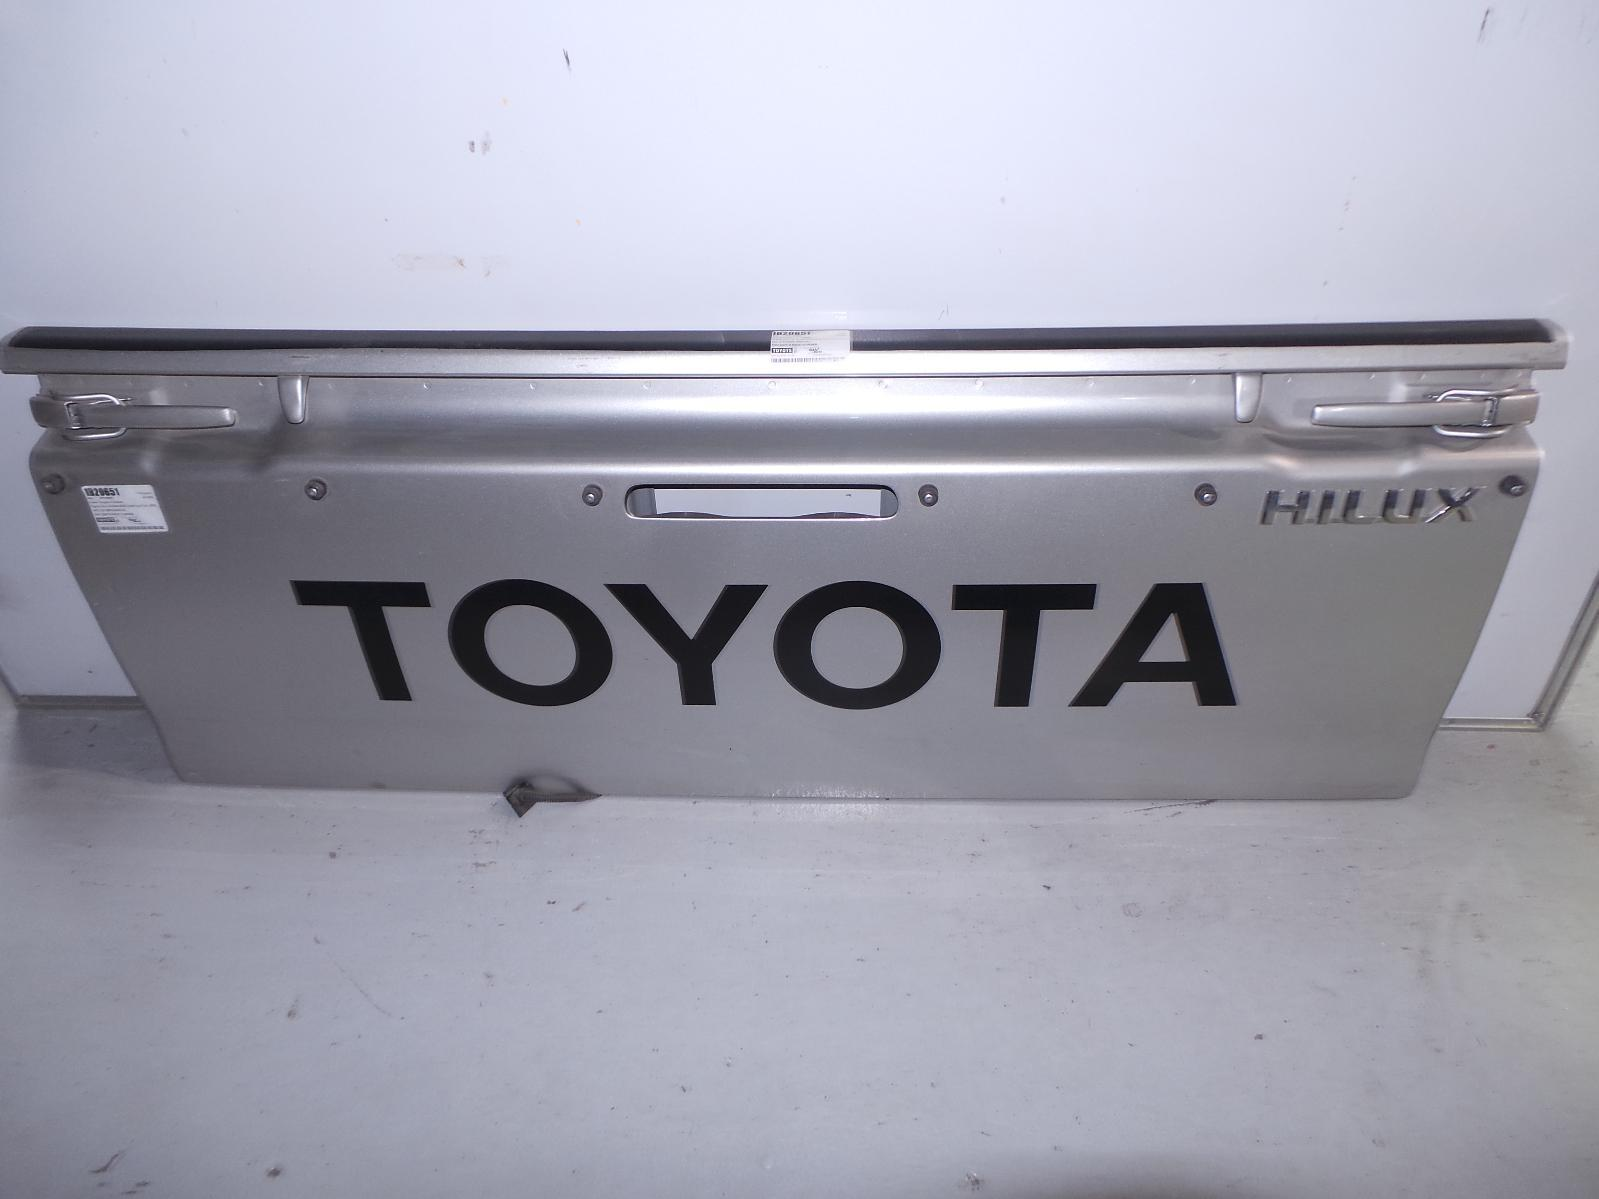 TOYOTA HILUX, Bootlid/Tailgate, TAILGATE, CENTRE HANDLE TYPE, W TONNEAU HOOKS & LAMP HOLE TYPE, 03/05-08/15